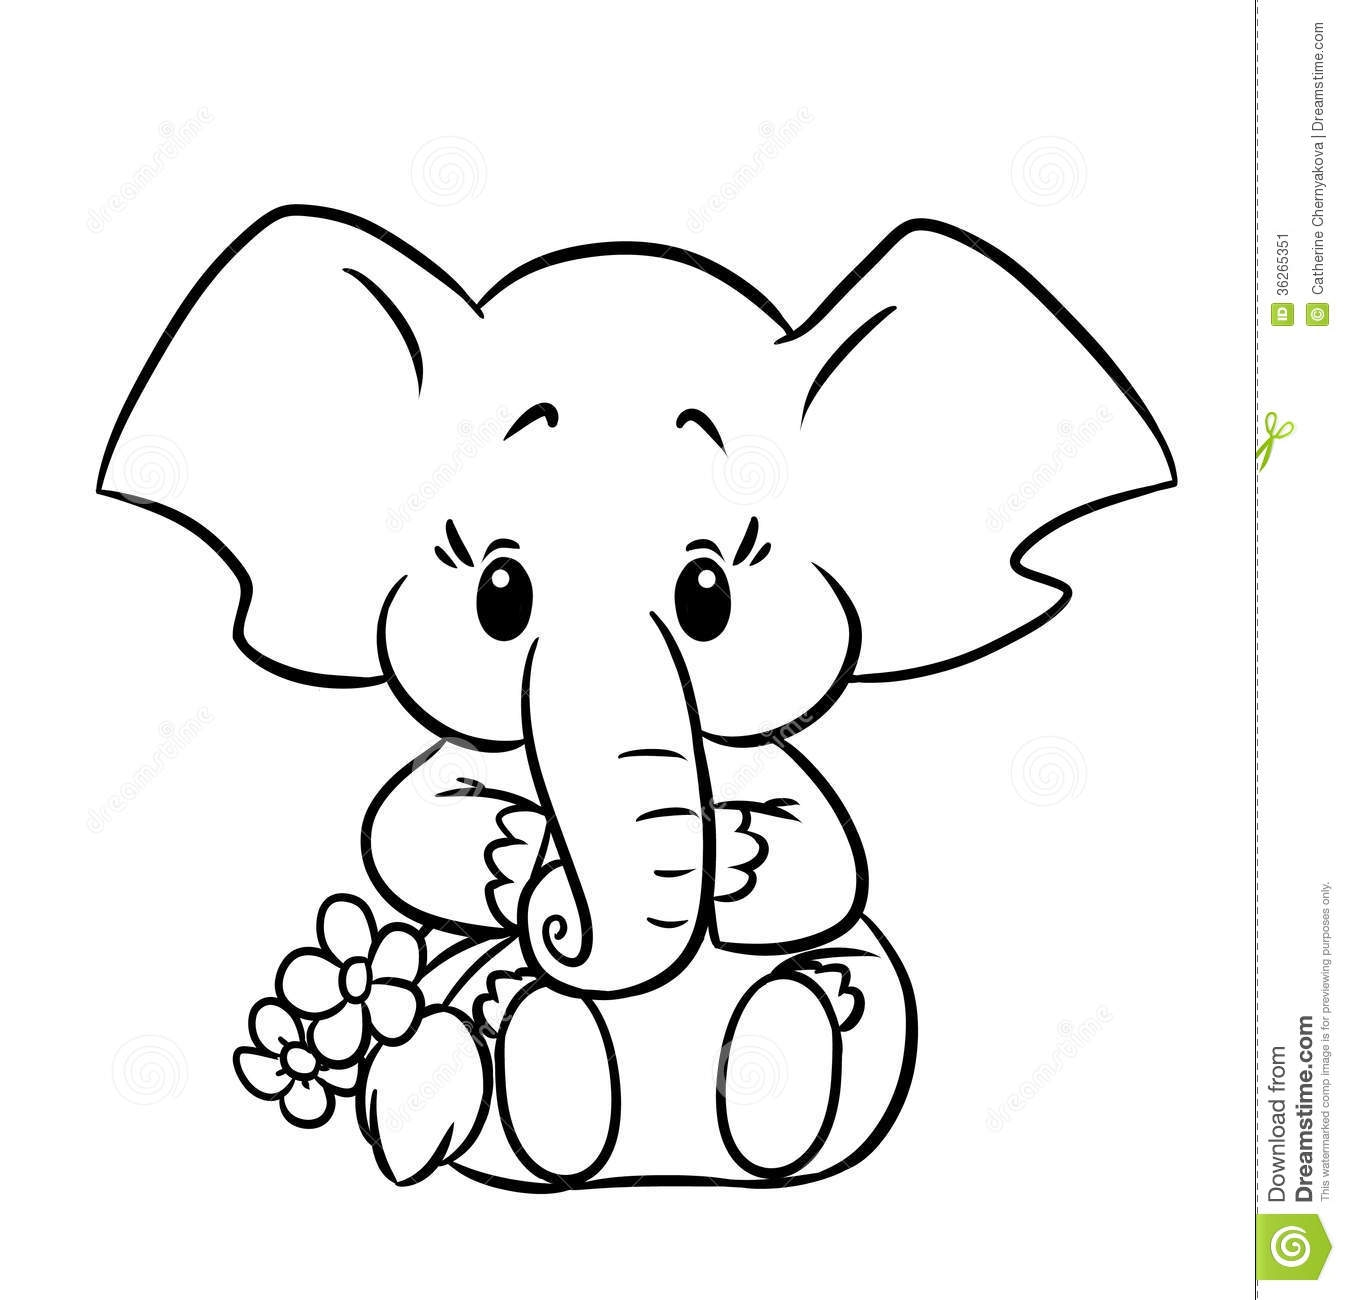 baby elephant coloring pages - 286